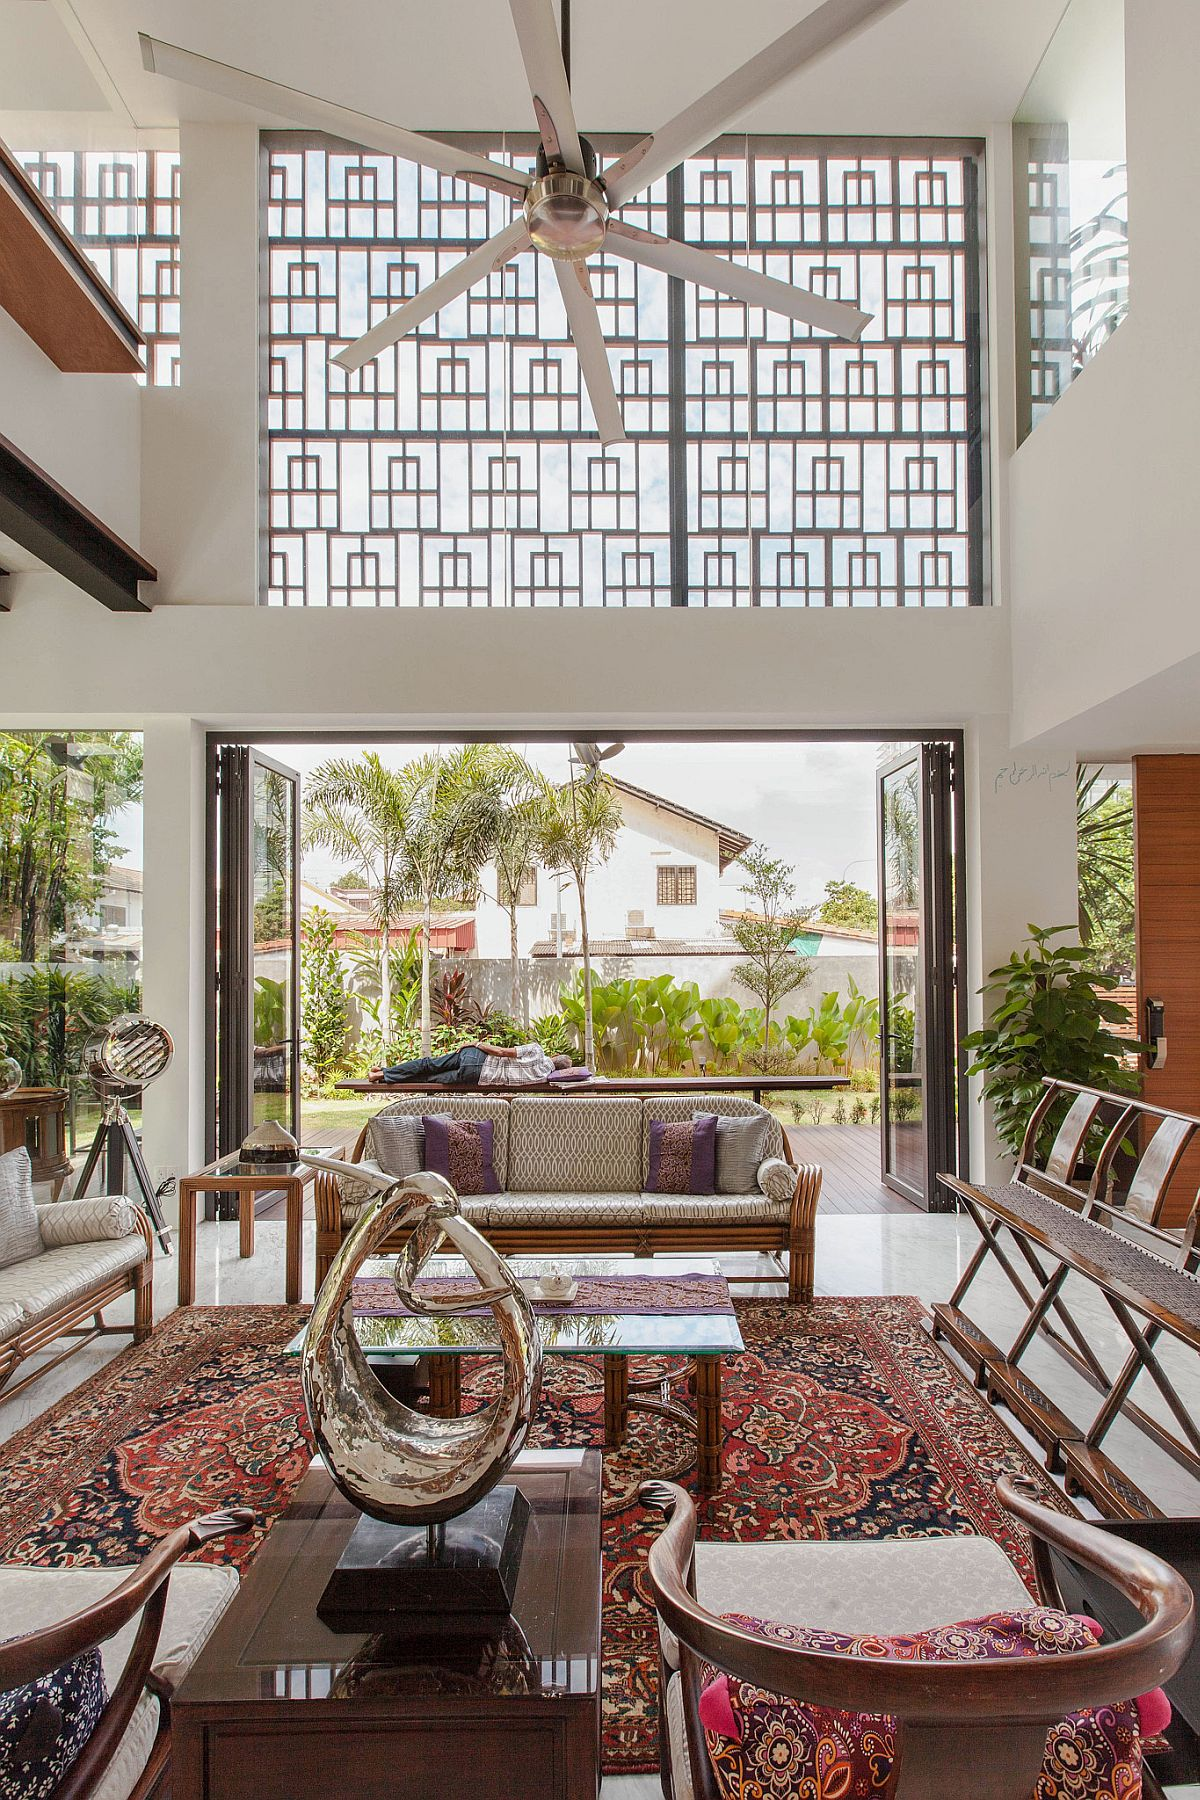 Colorful and intricate rug binds together the decor in the open living space